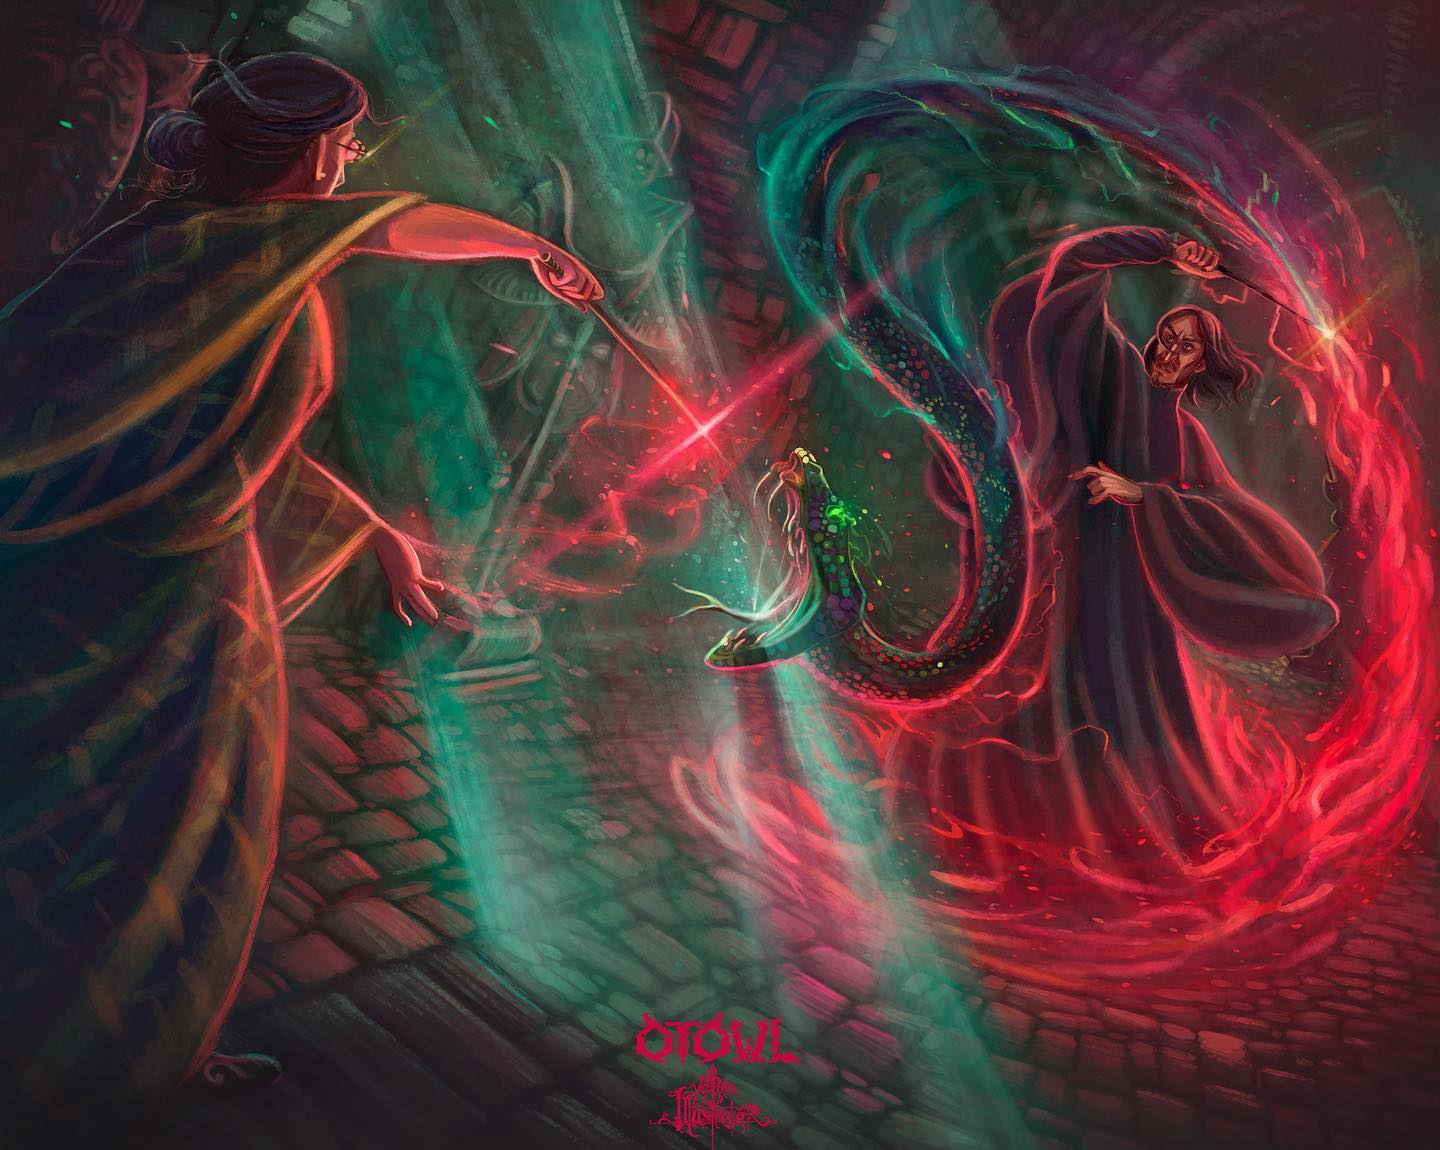 Snape and McGonnagal Duel